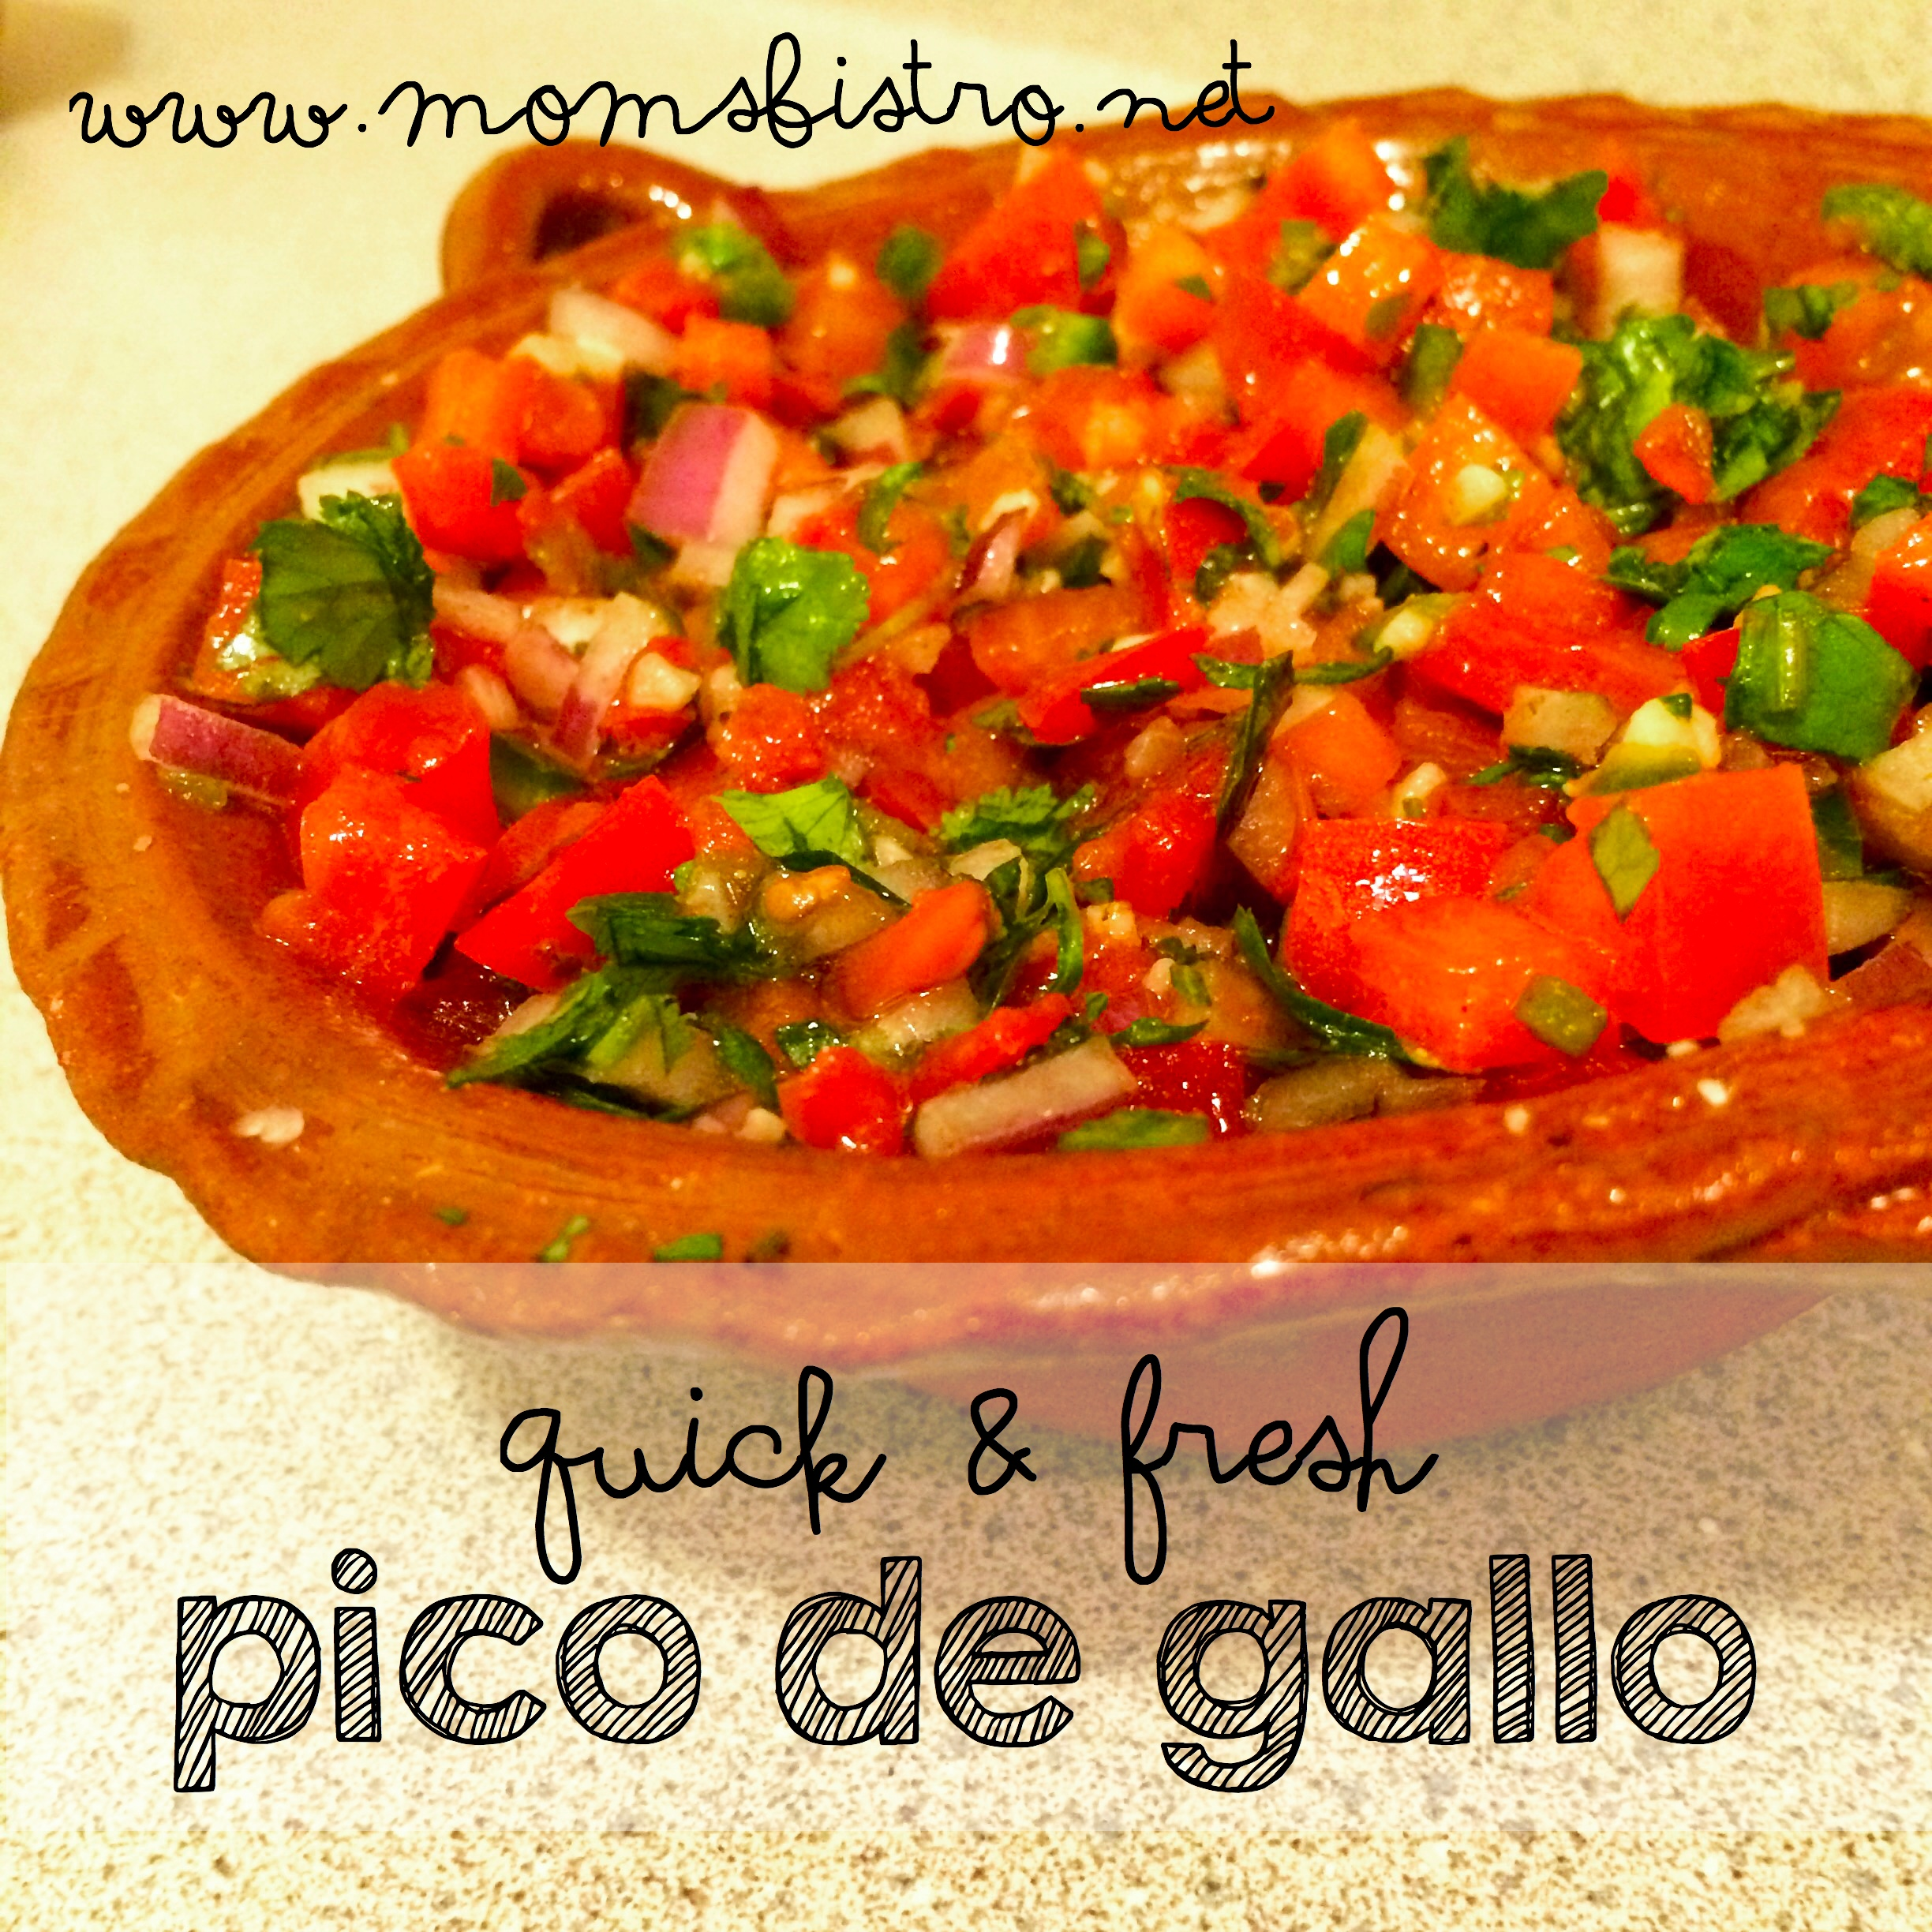 Celebrate Cinco de Mayo with This Quick and Fresh Pico De Gallo Recipe PLUS 6 Other Mexican Recipes for Cinco de Mayo